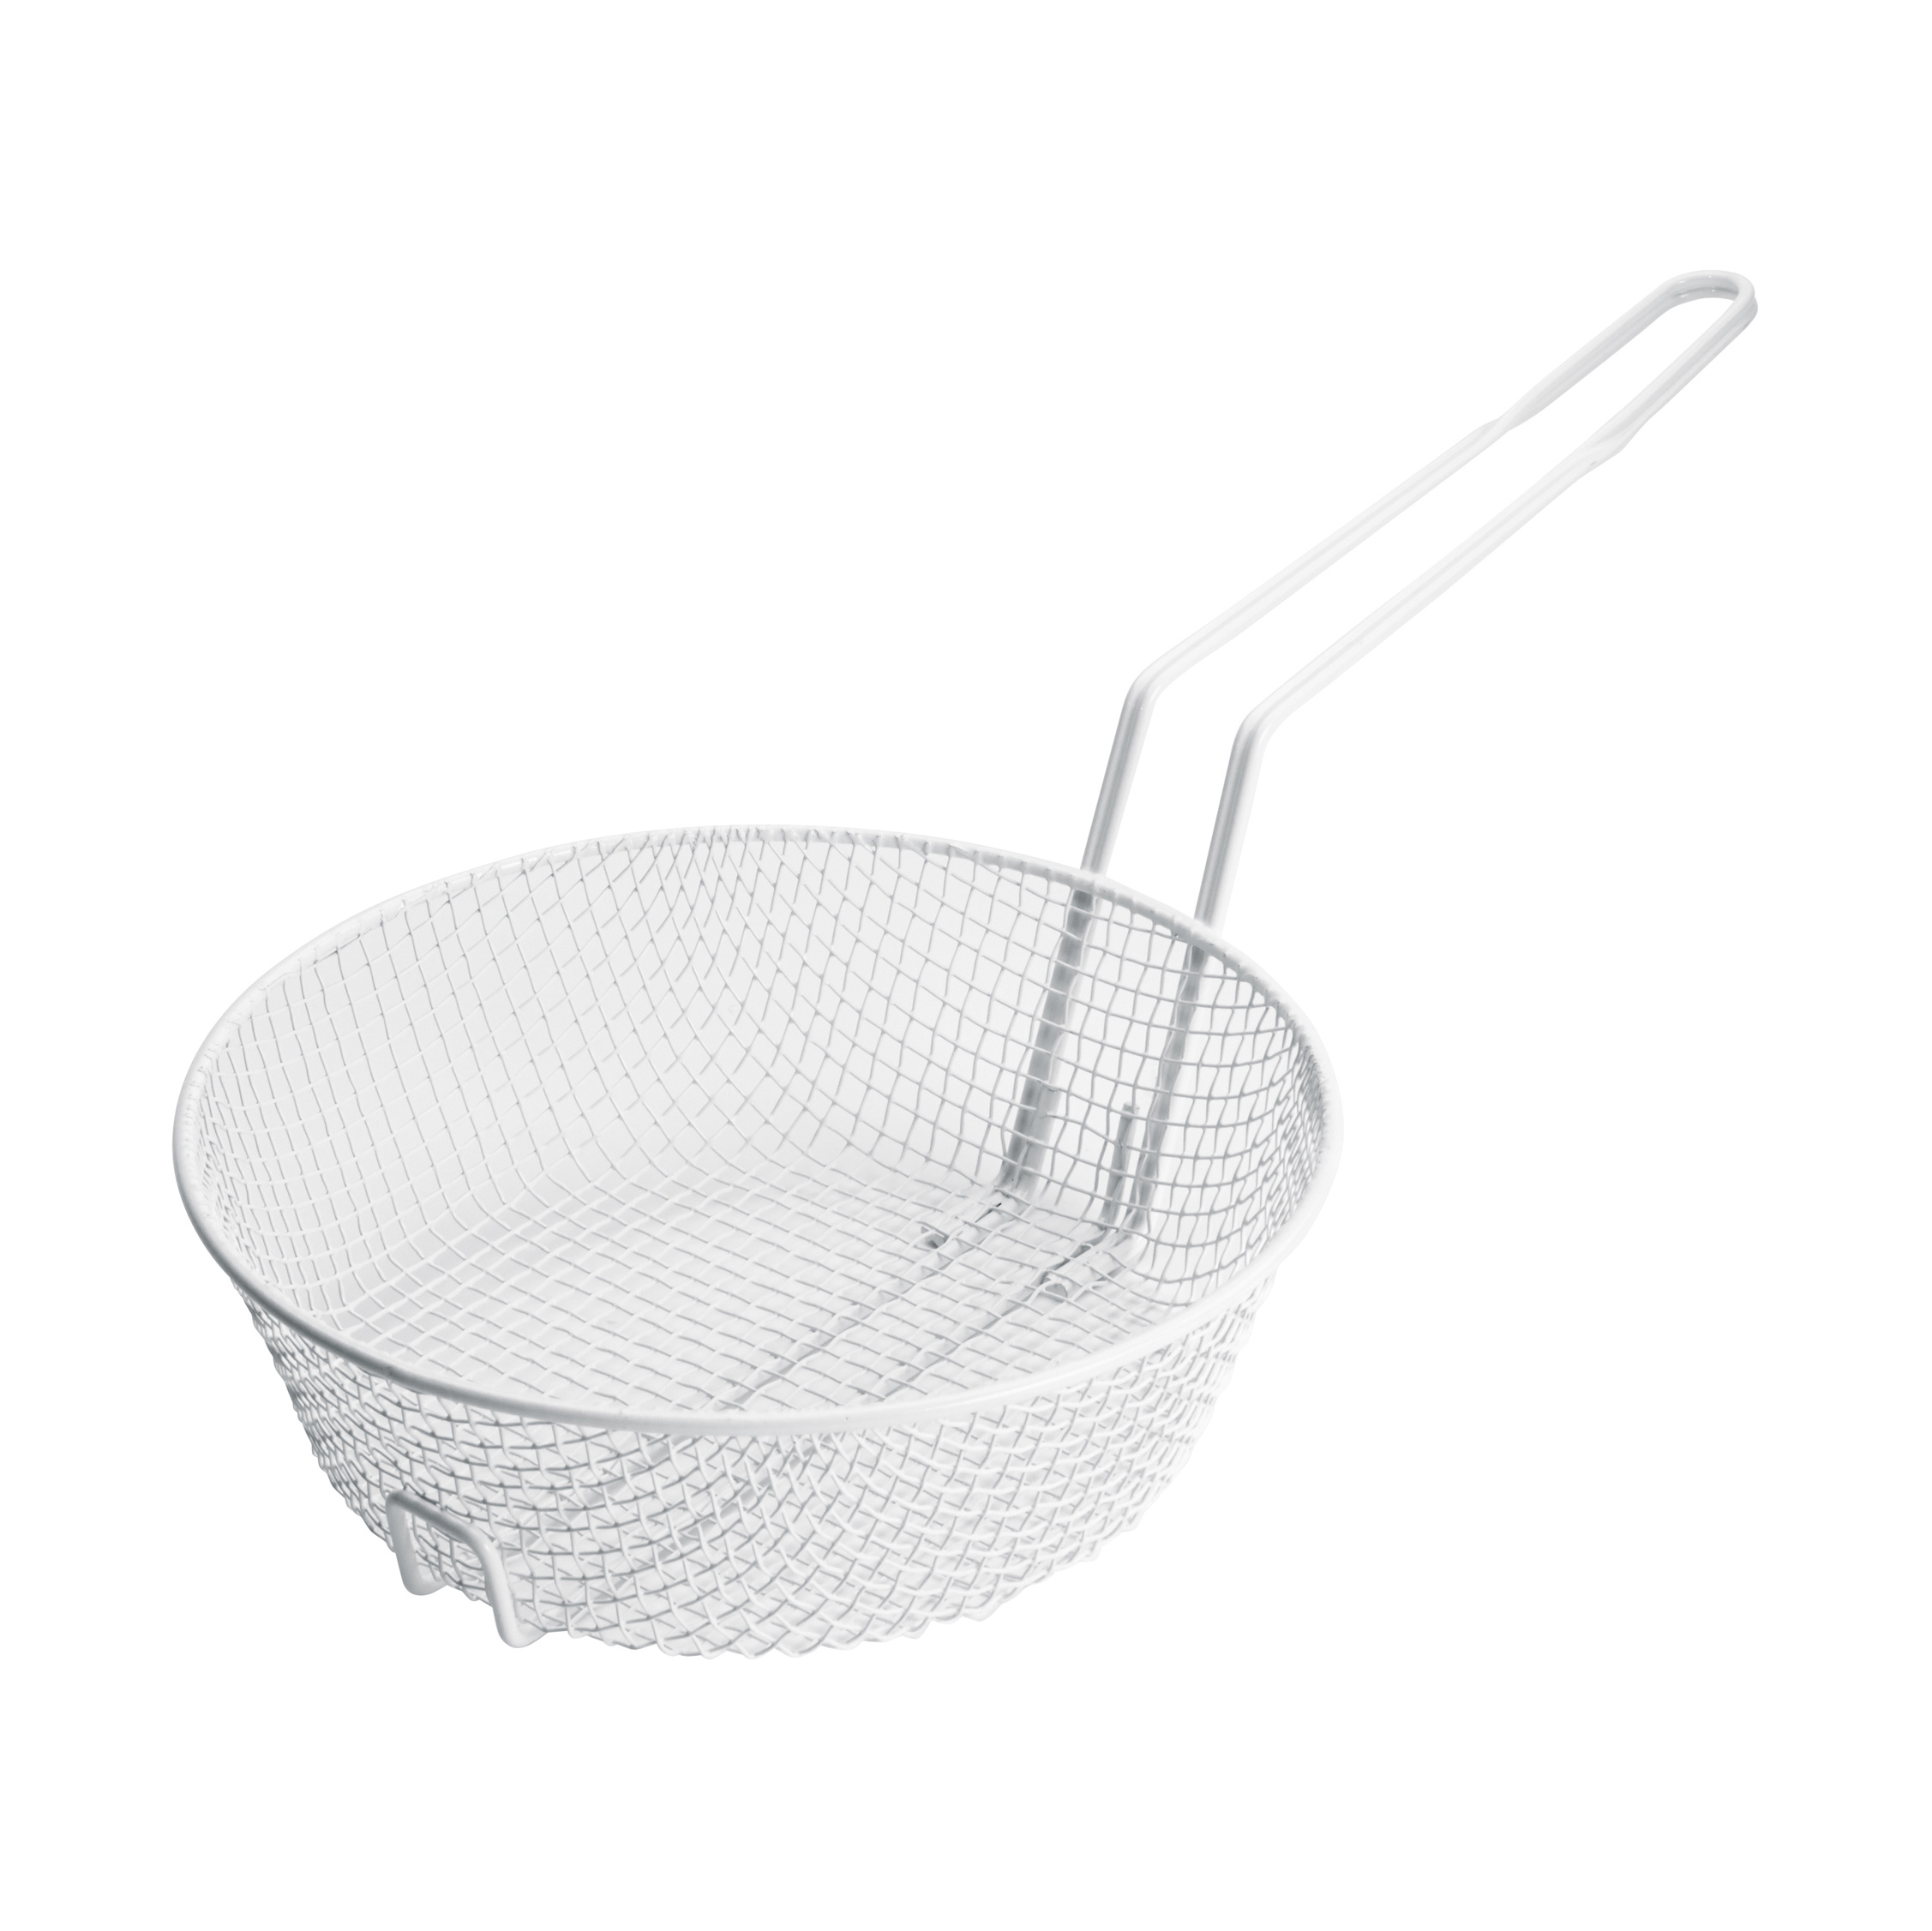 Winco MSBW-10M fryer basket